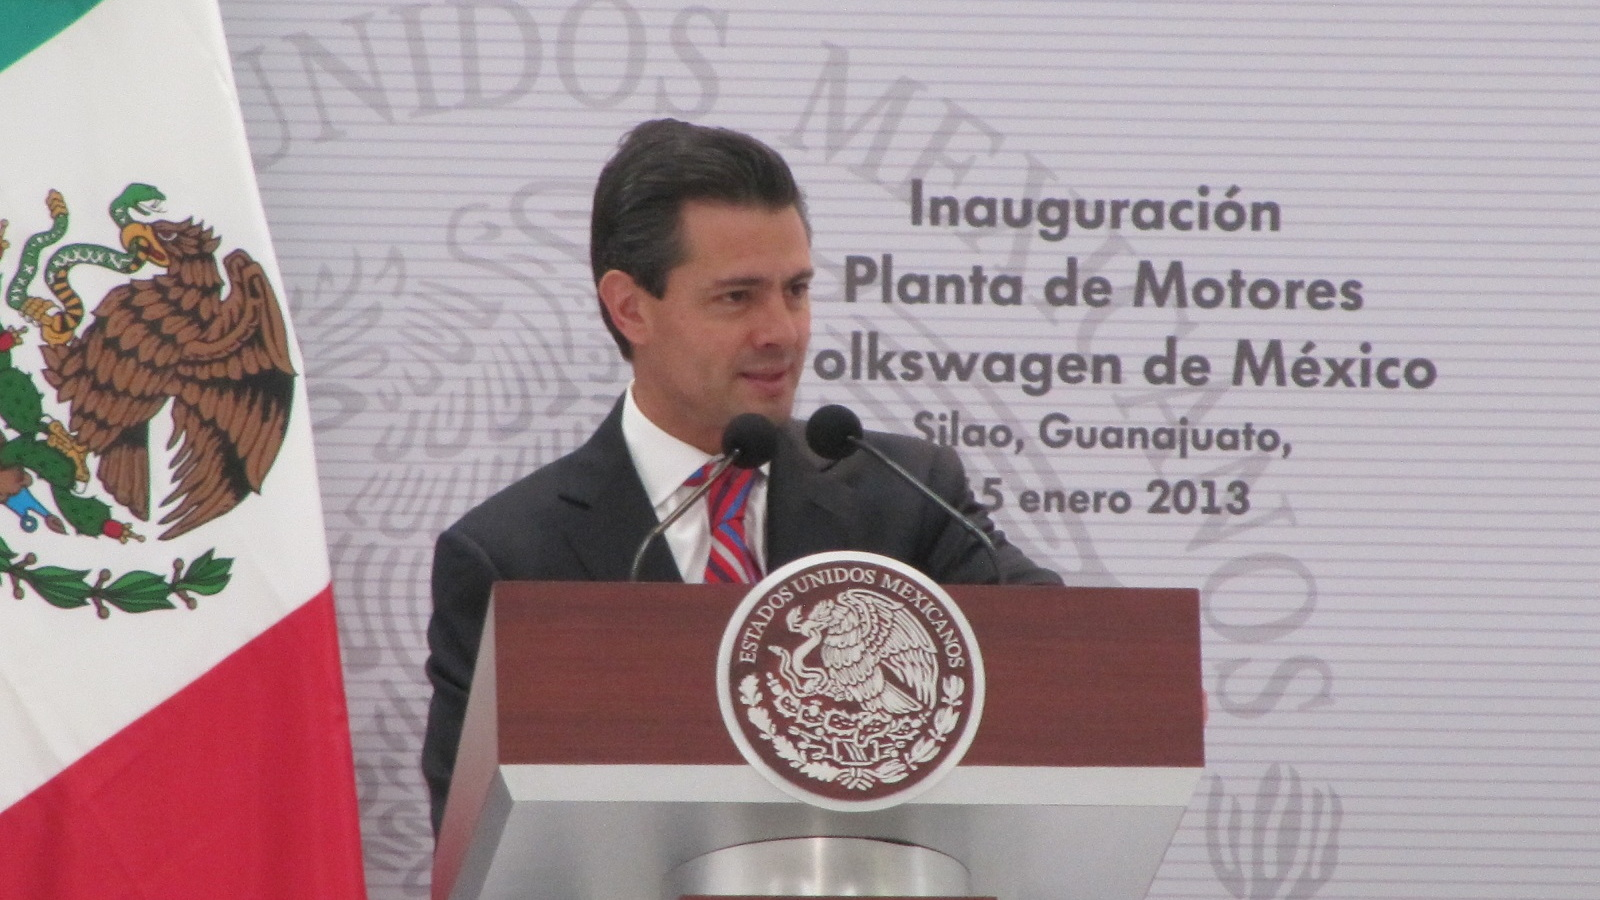 Enrique Pena Nieto, president of Mexico, speaks at opening of Volkswagen engine plant, Silao, Mexico